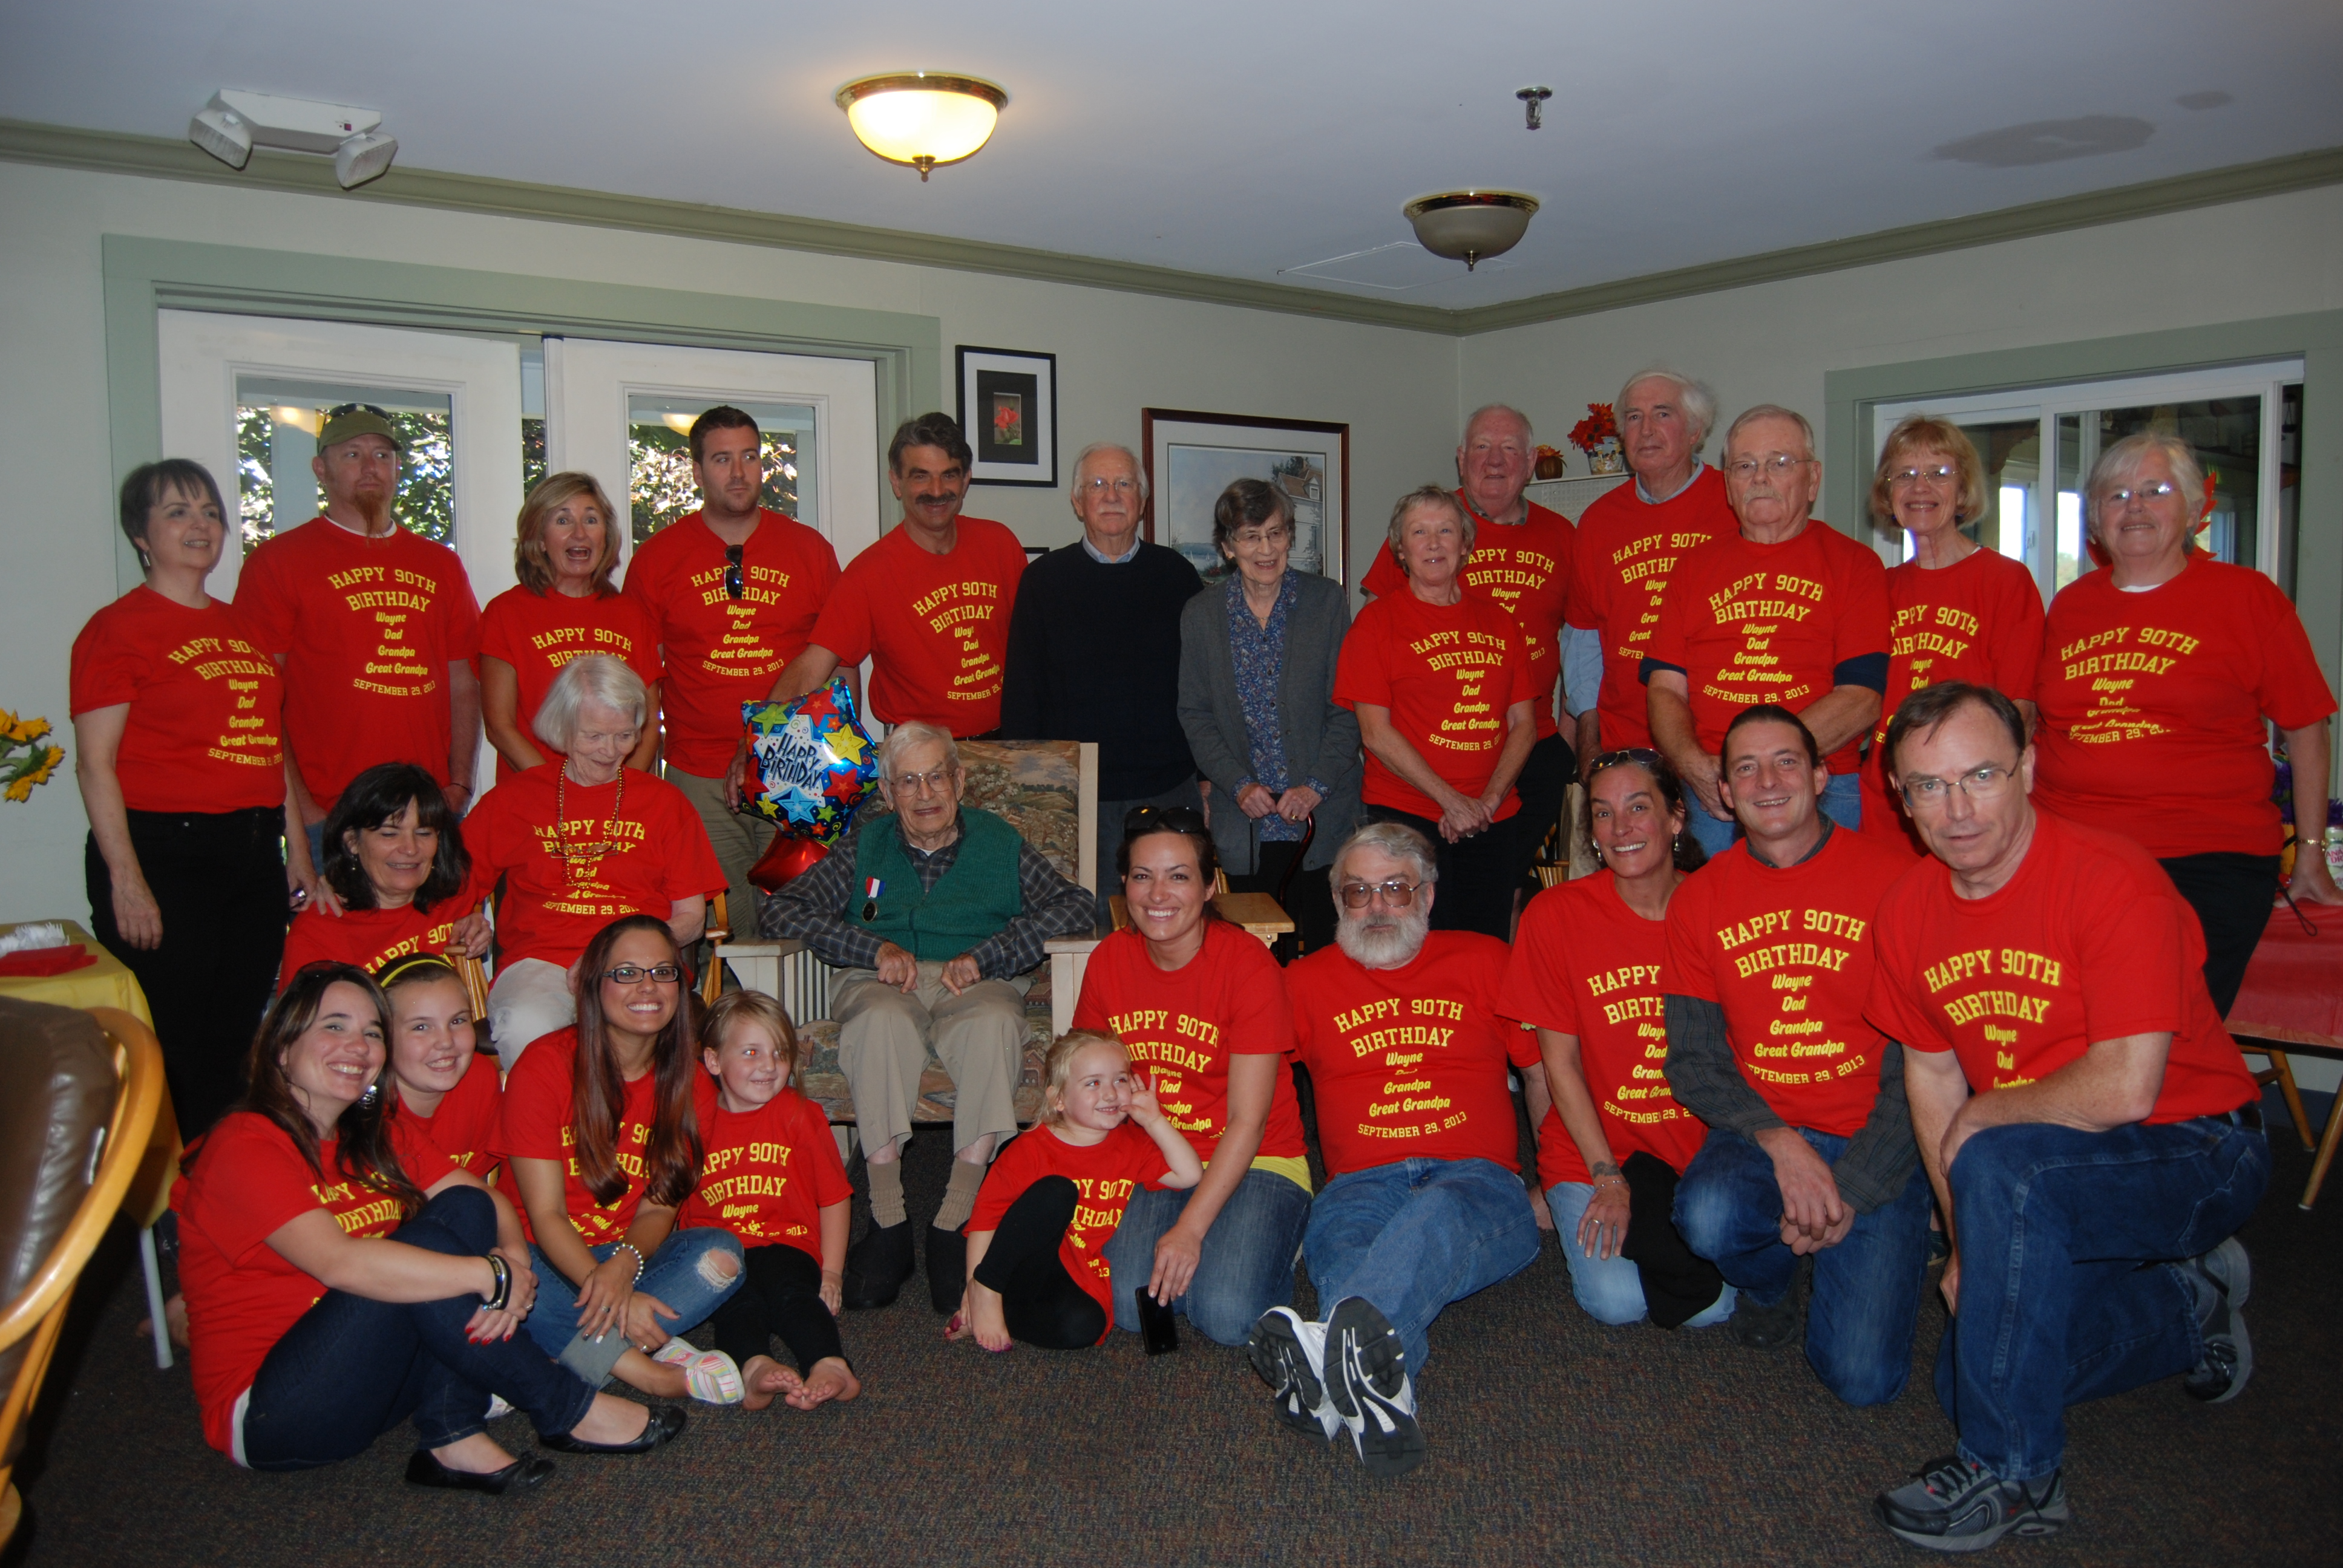 Custom TShirts for Happy 90th Wayne Dad Uncle Wayne Grandpa And